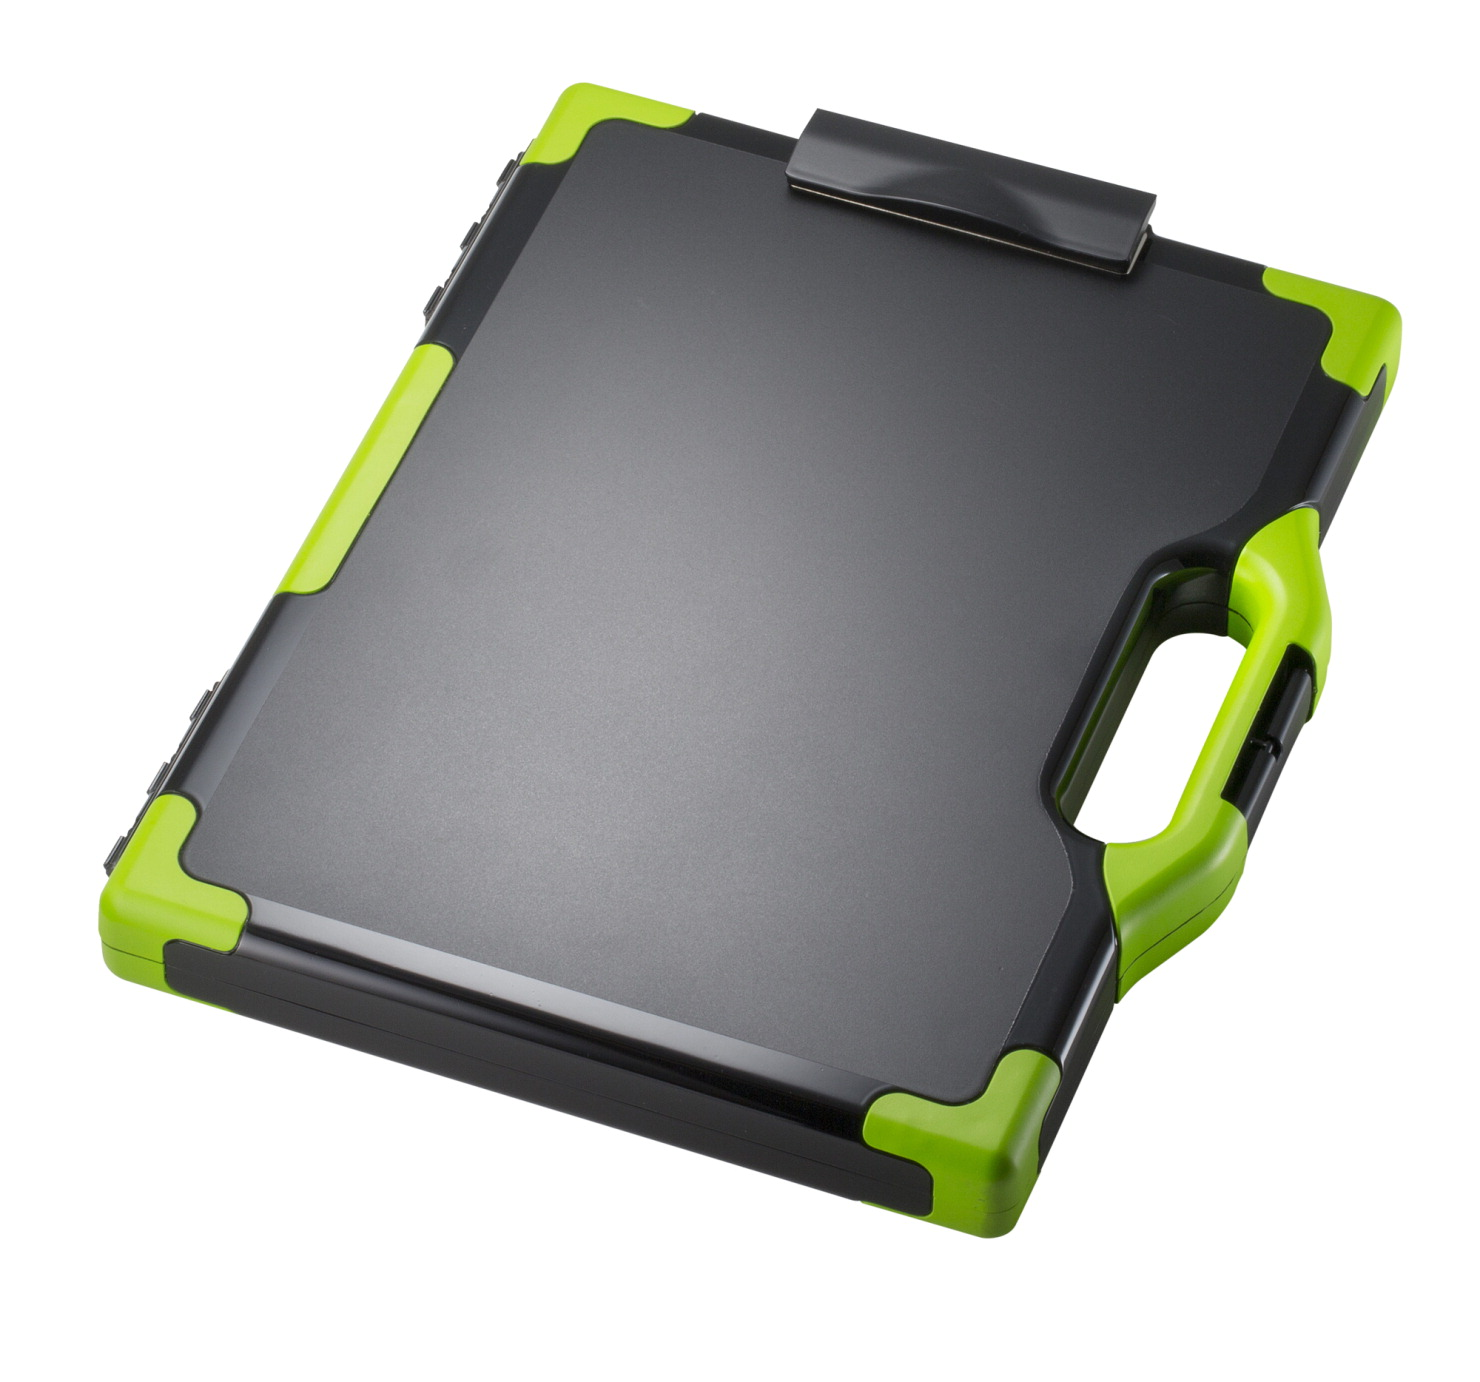 CARRY-ALL Clipboard Storage Box with Handle, Letter/Legal, 15-1/2 x 13 x 2  Inches, Black/Green